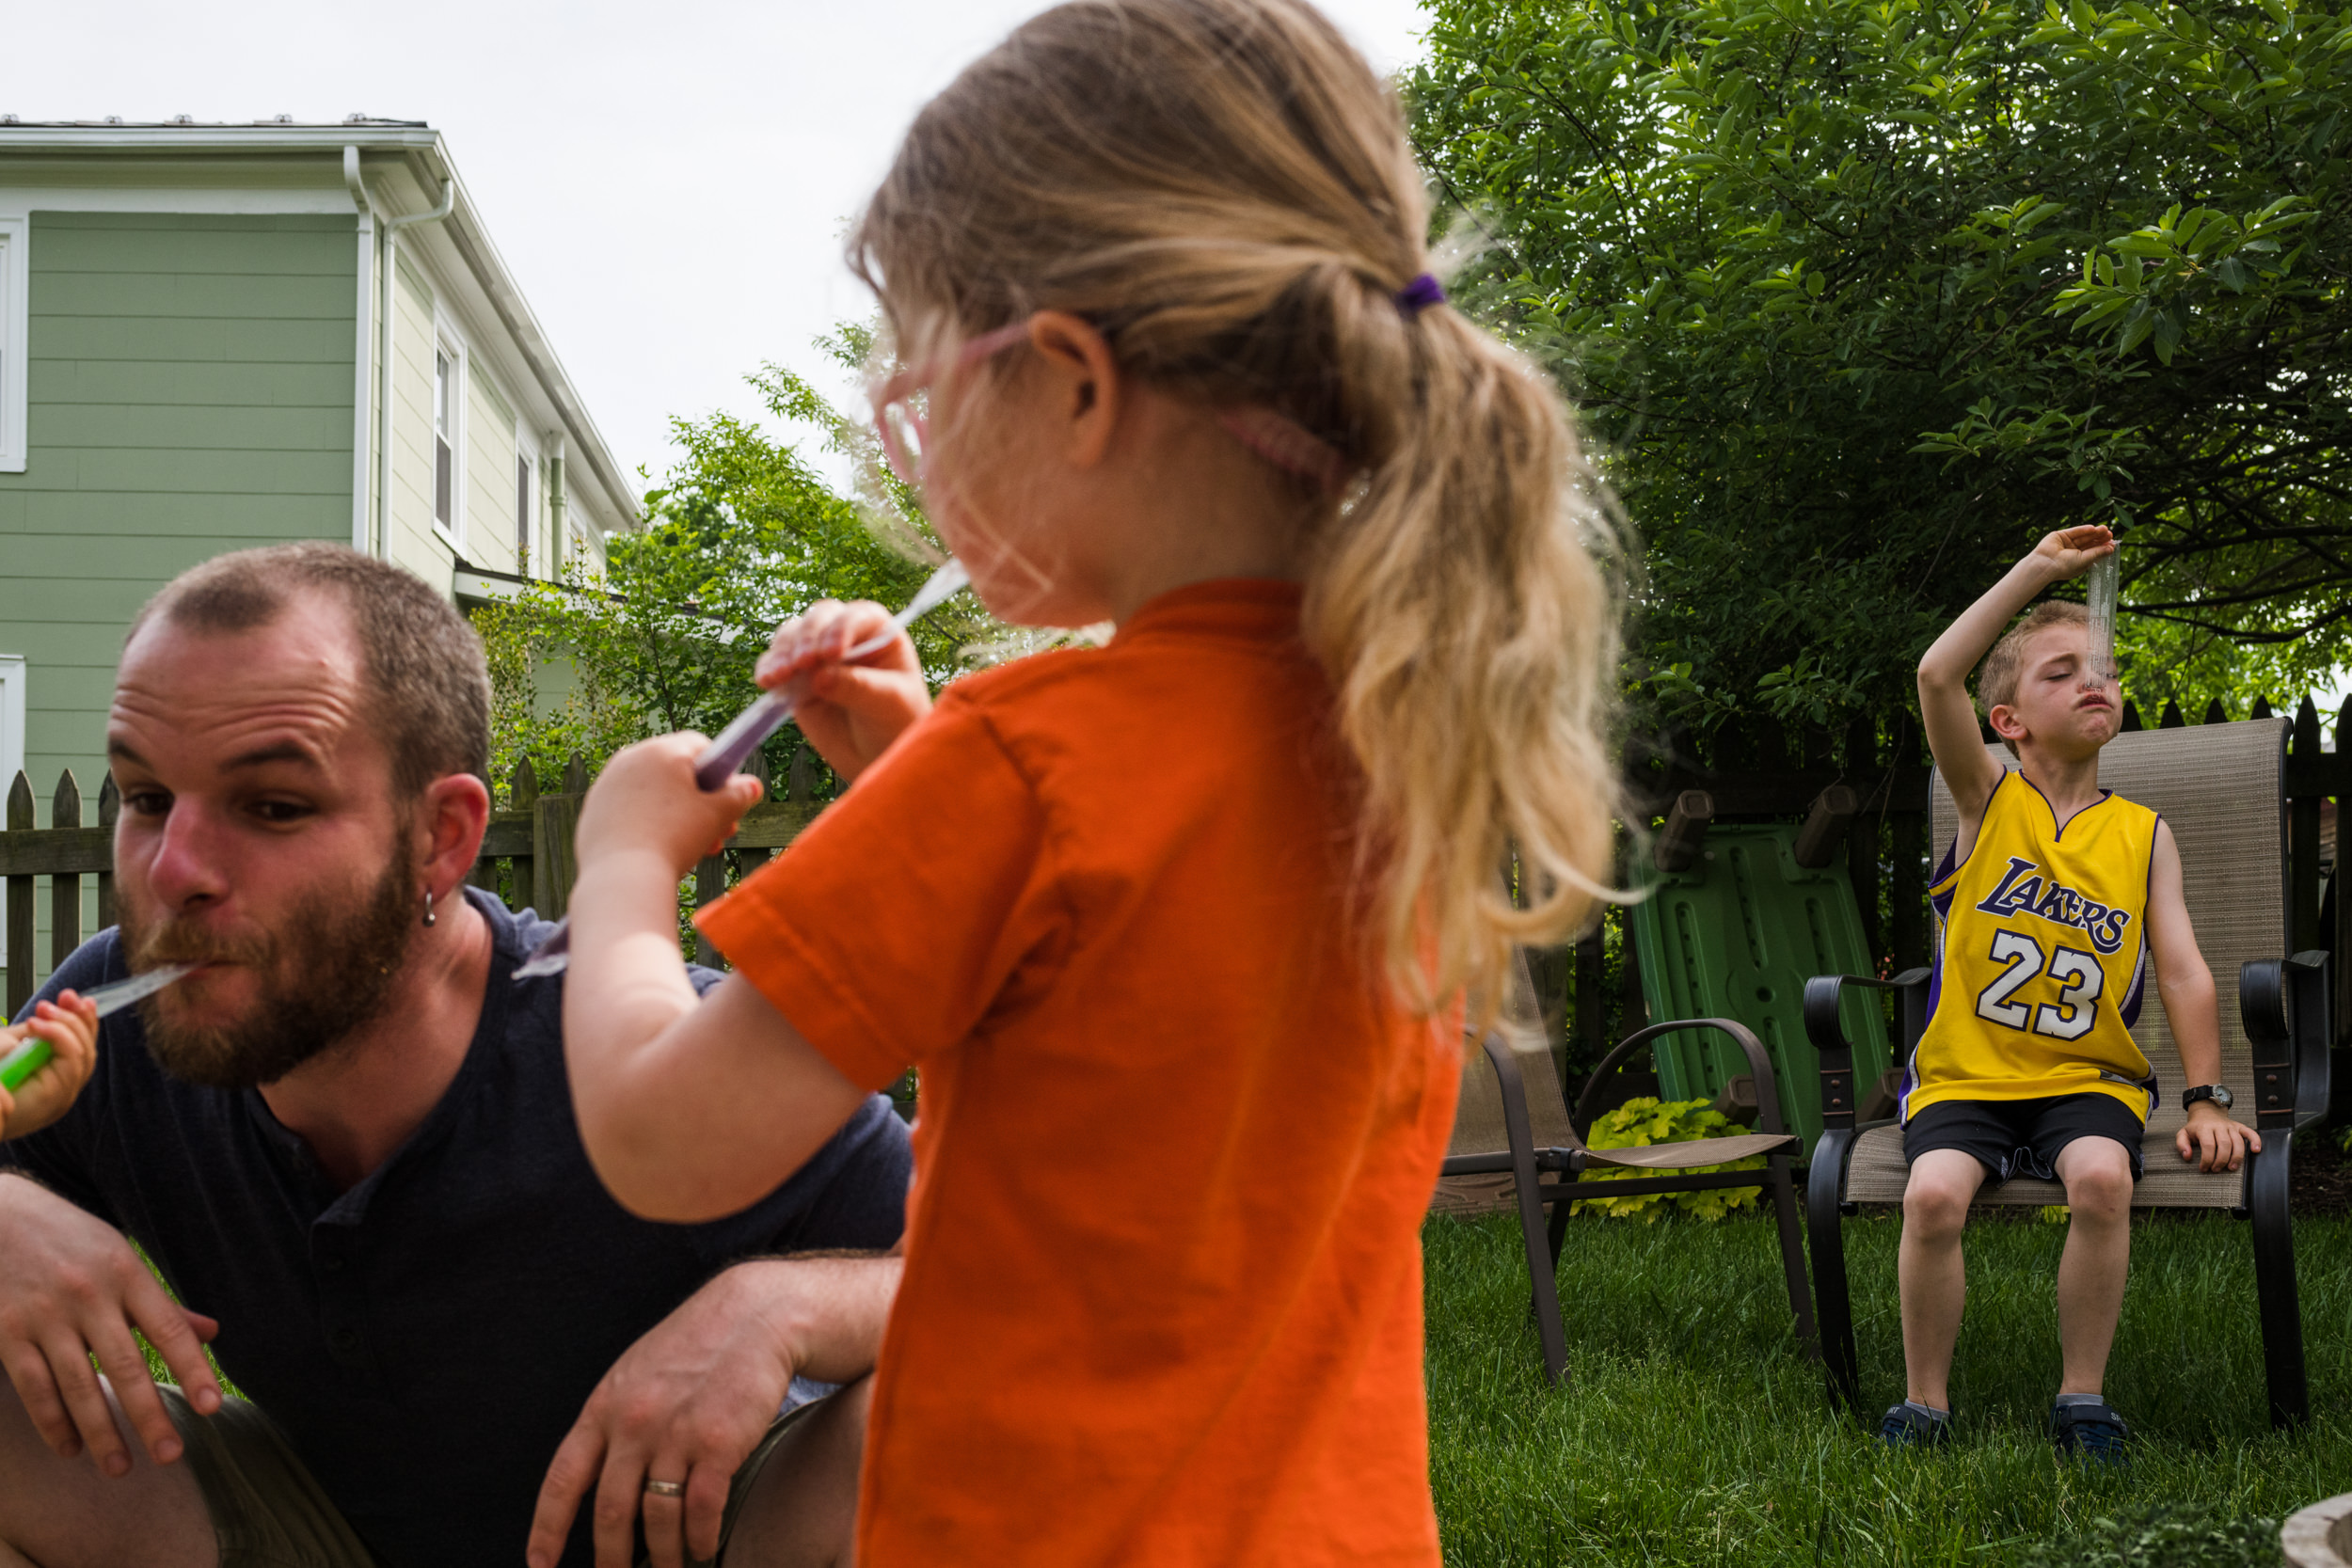 Family enjoying freezies together in their backyard.